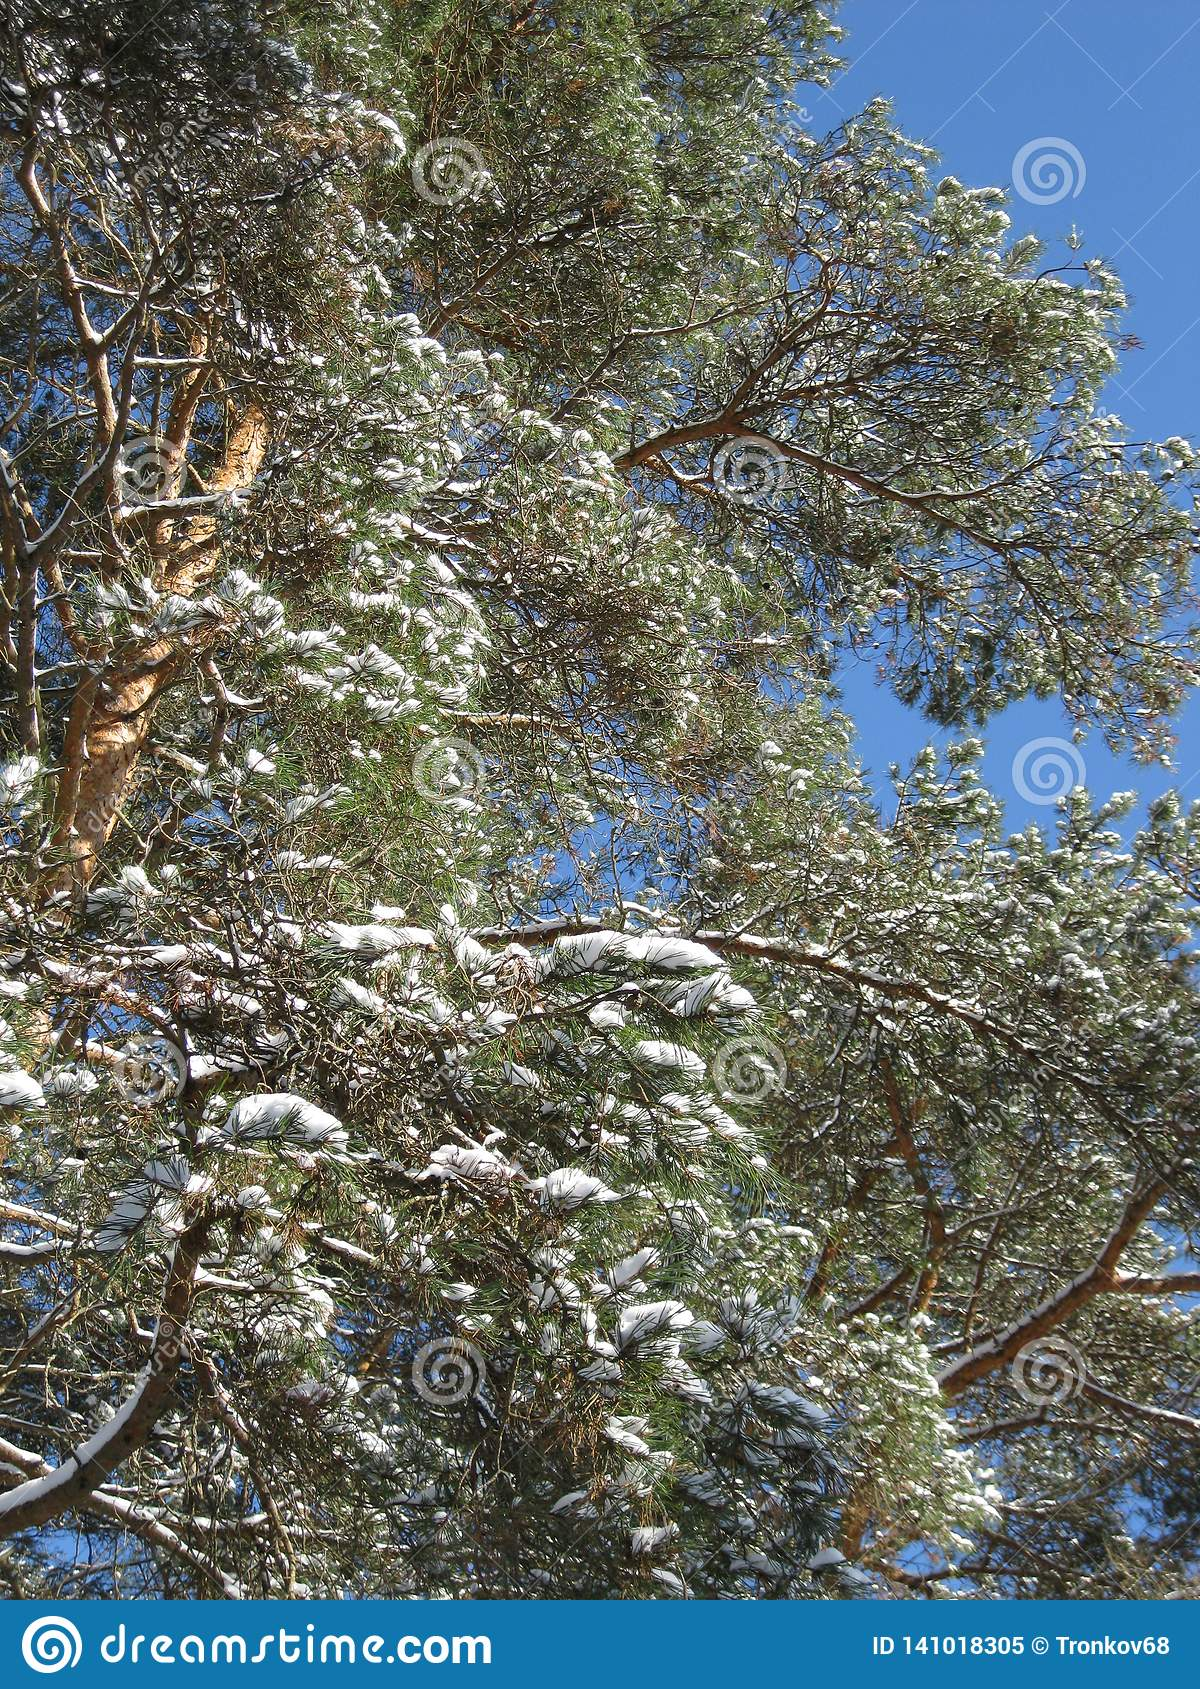 Winter forest covered with blue sky.